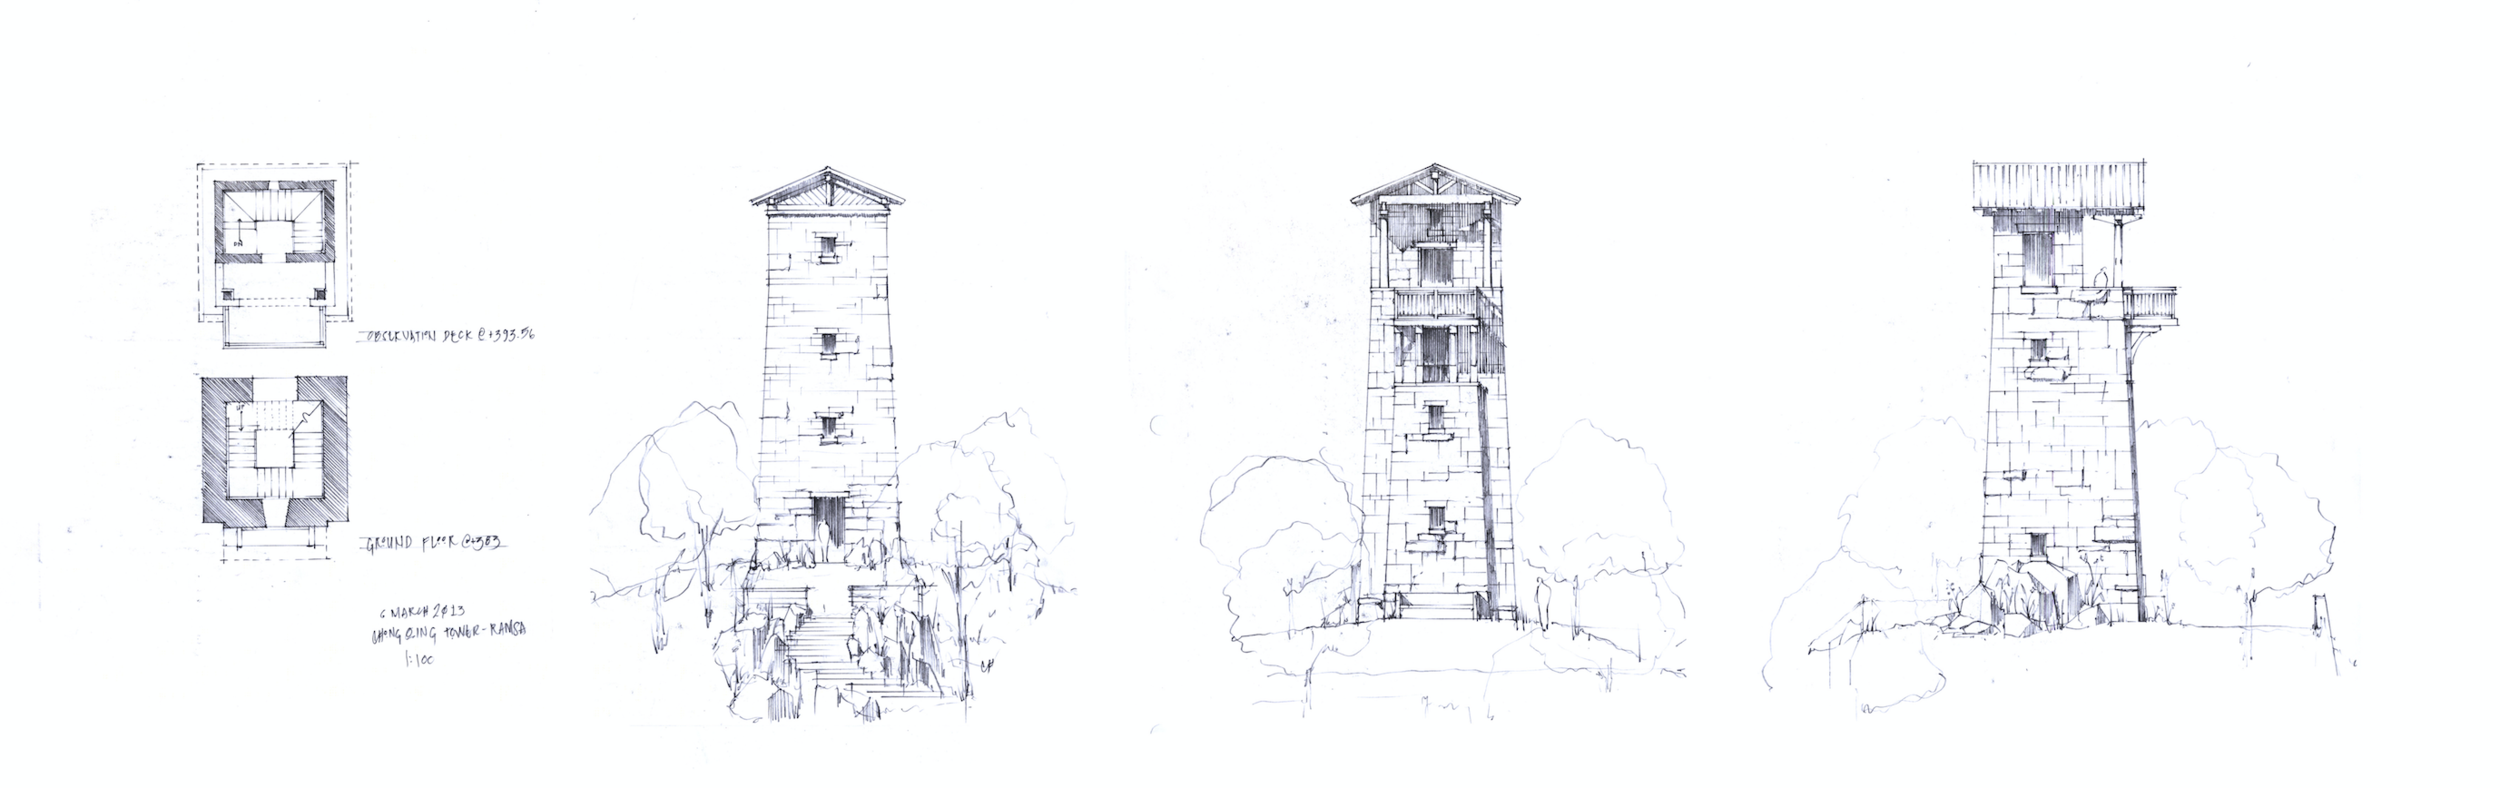 Drawings done while at RAMSA: Chongqing City Center, Observation Tower